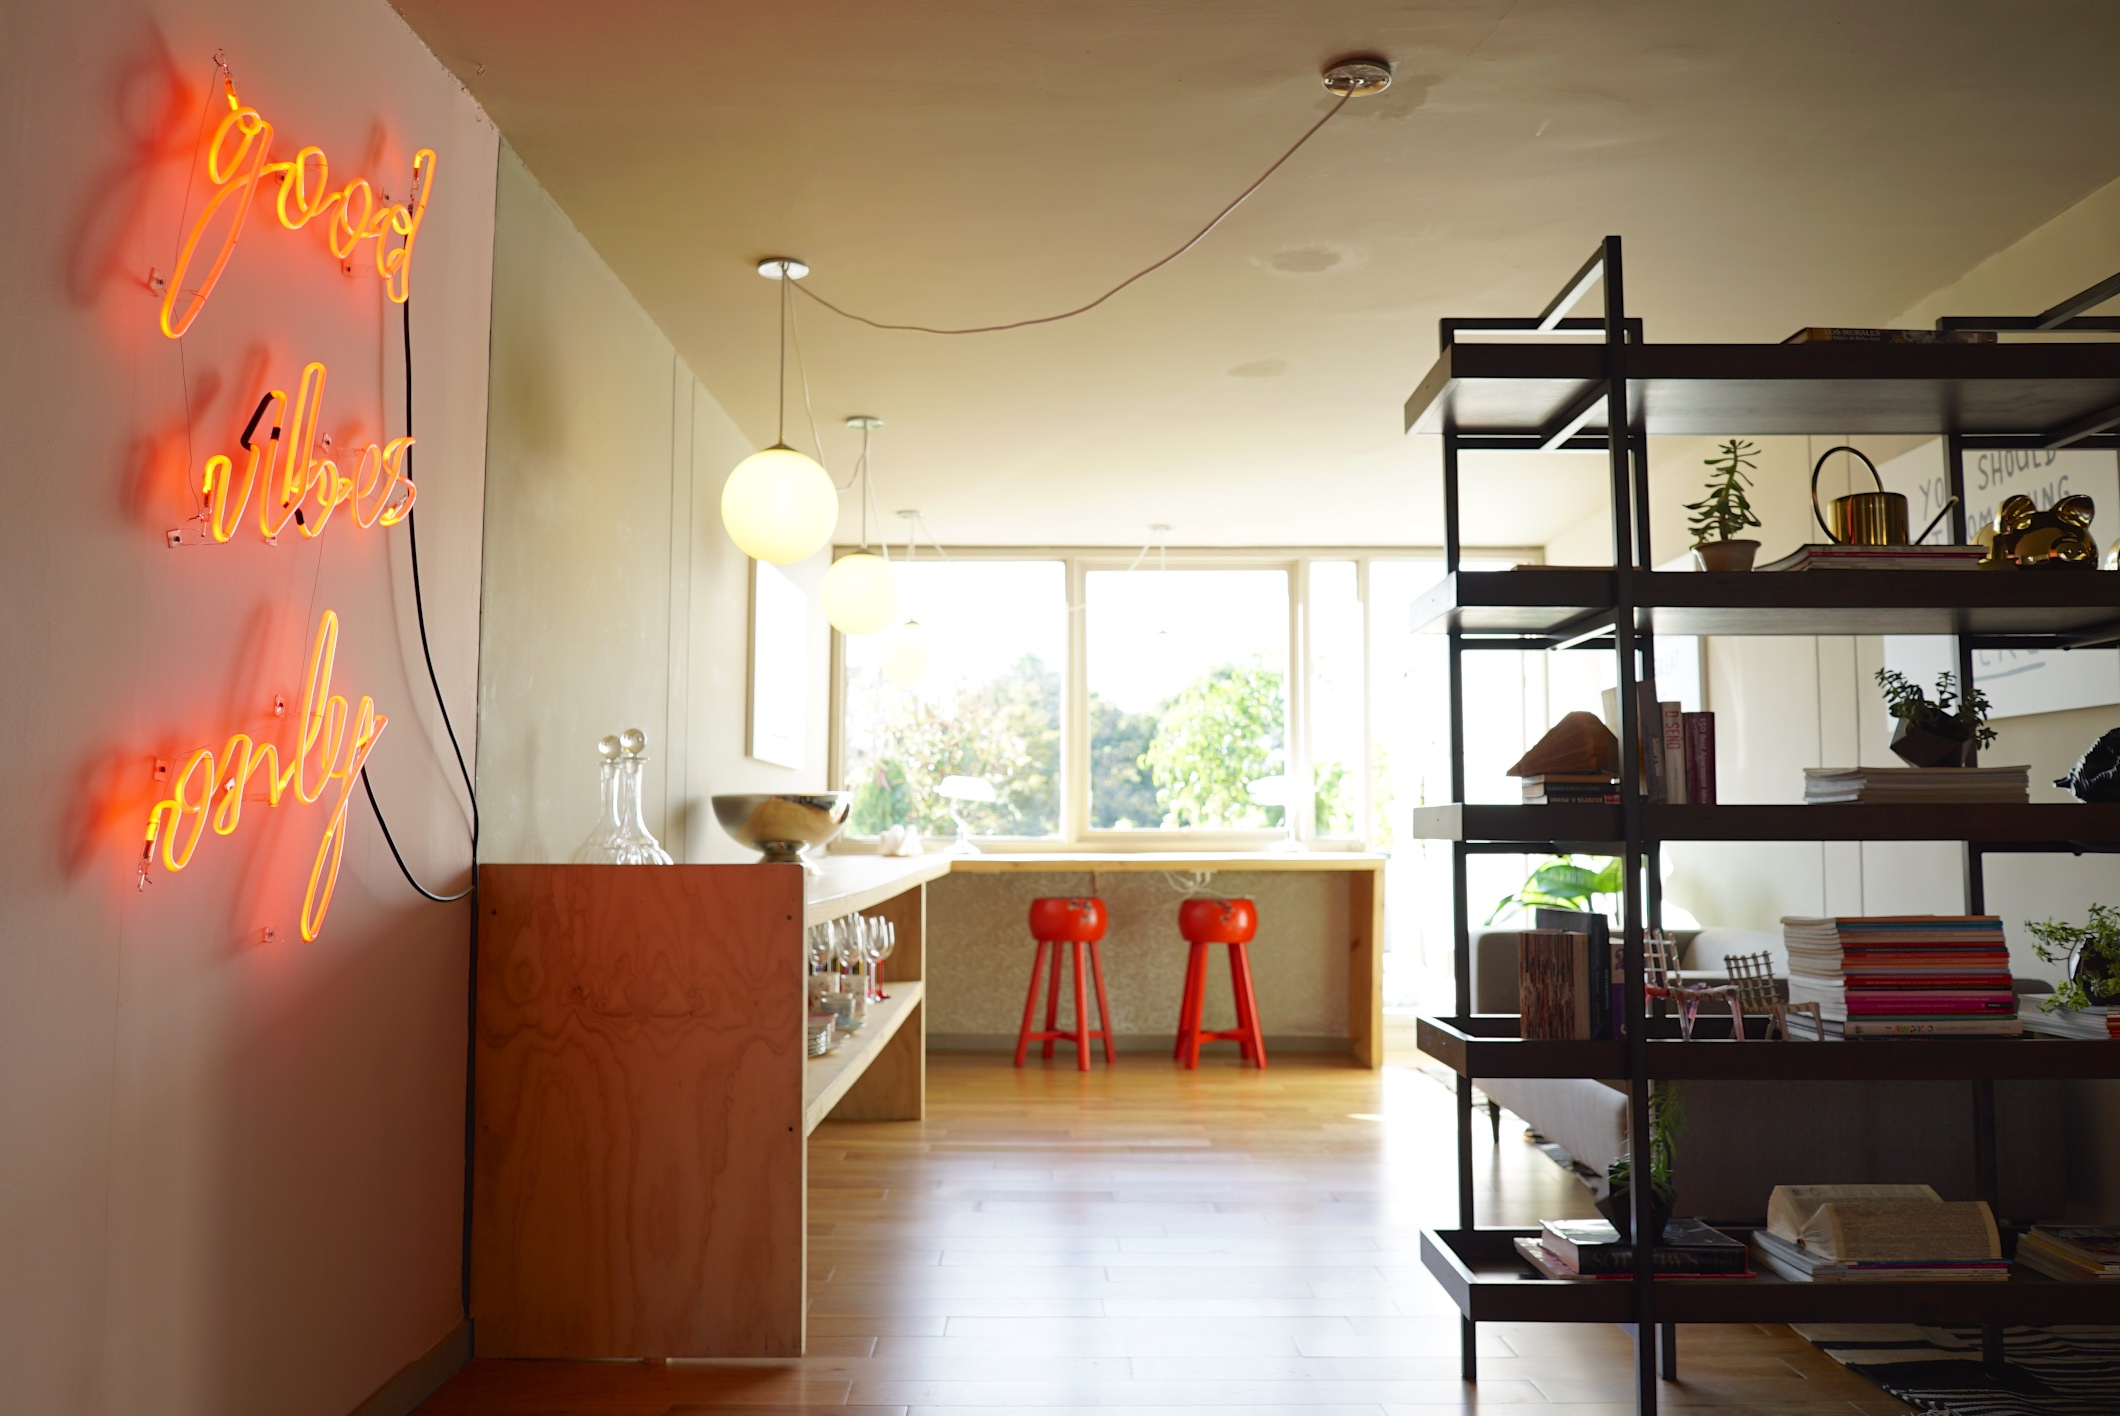 The snack bar is characterized by wood tones and pops of bright red.